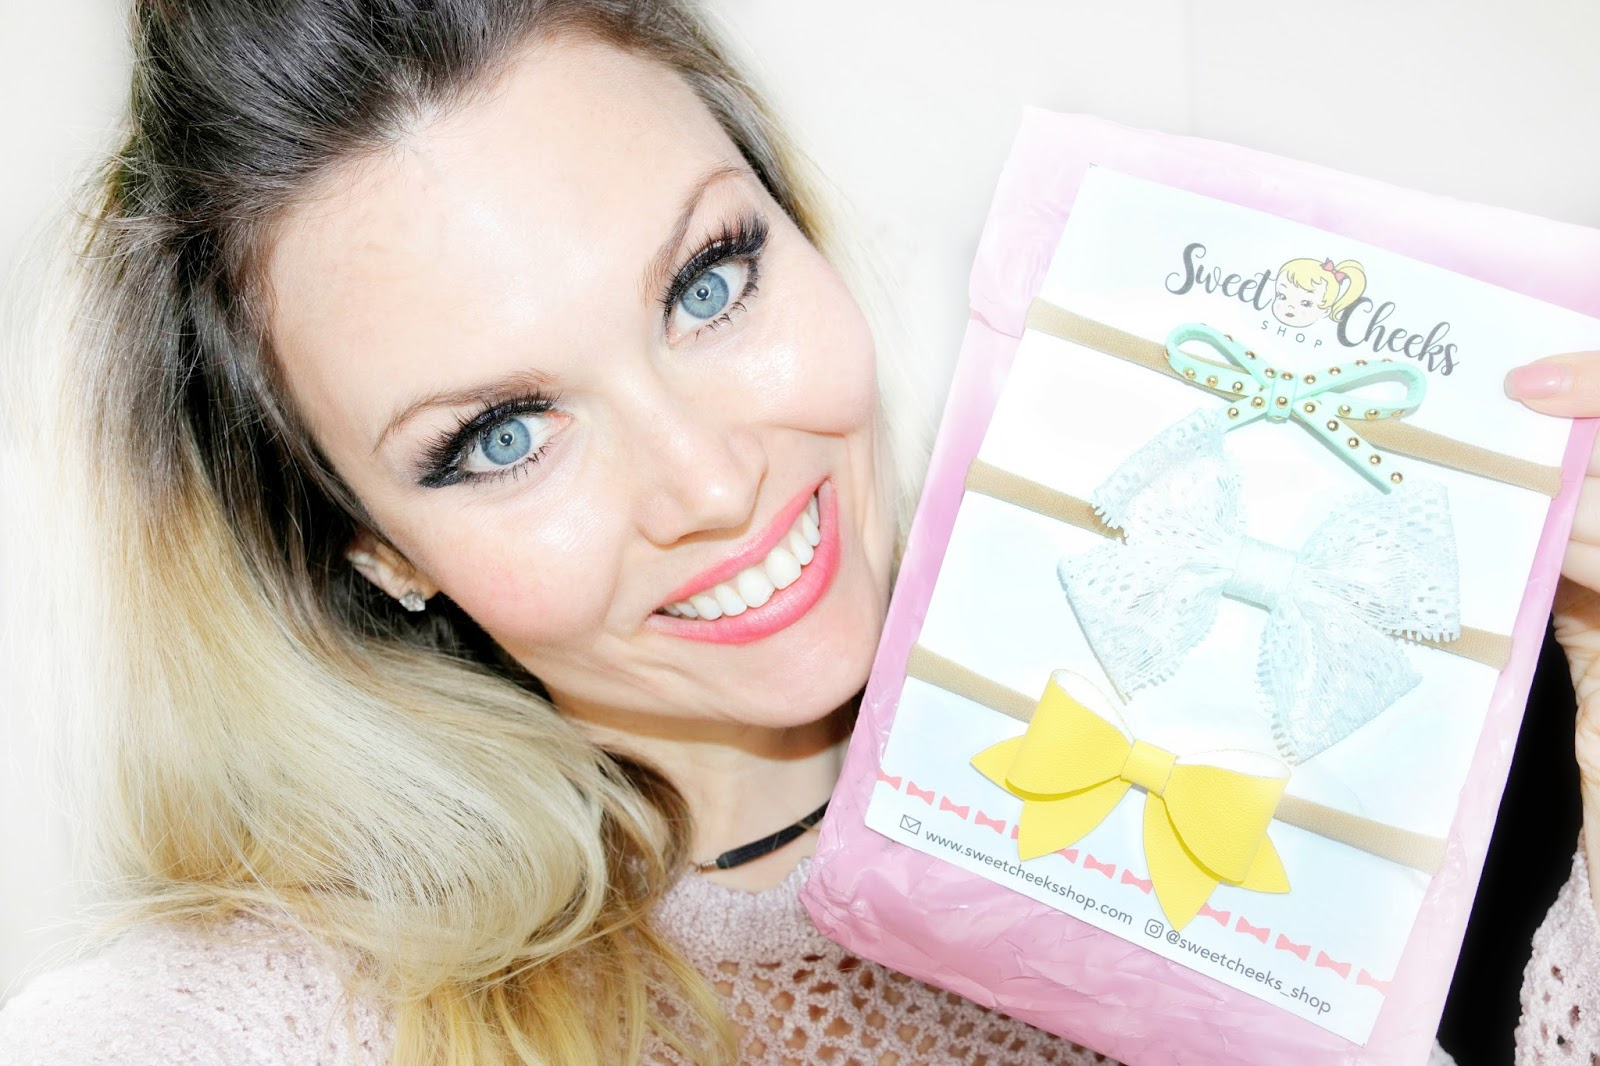 sweet cheeks shop monthly bow subscription April Spring 2018 bows girl mom blue eyes blogger momlife blog unboxing baby newborn